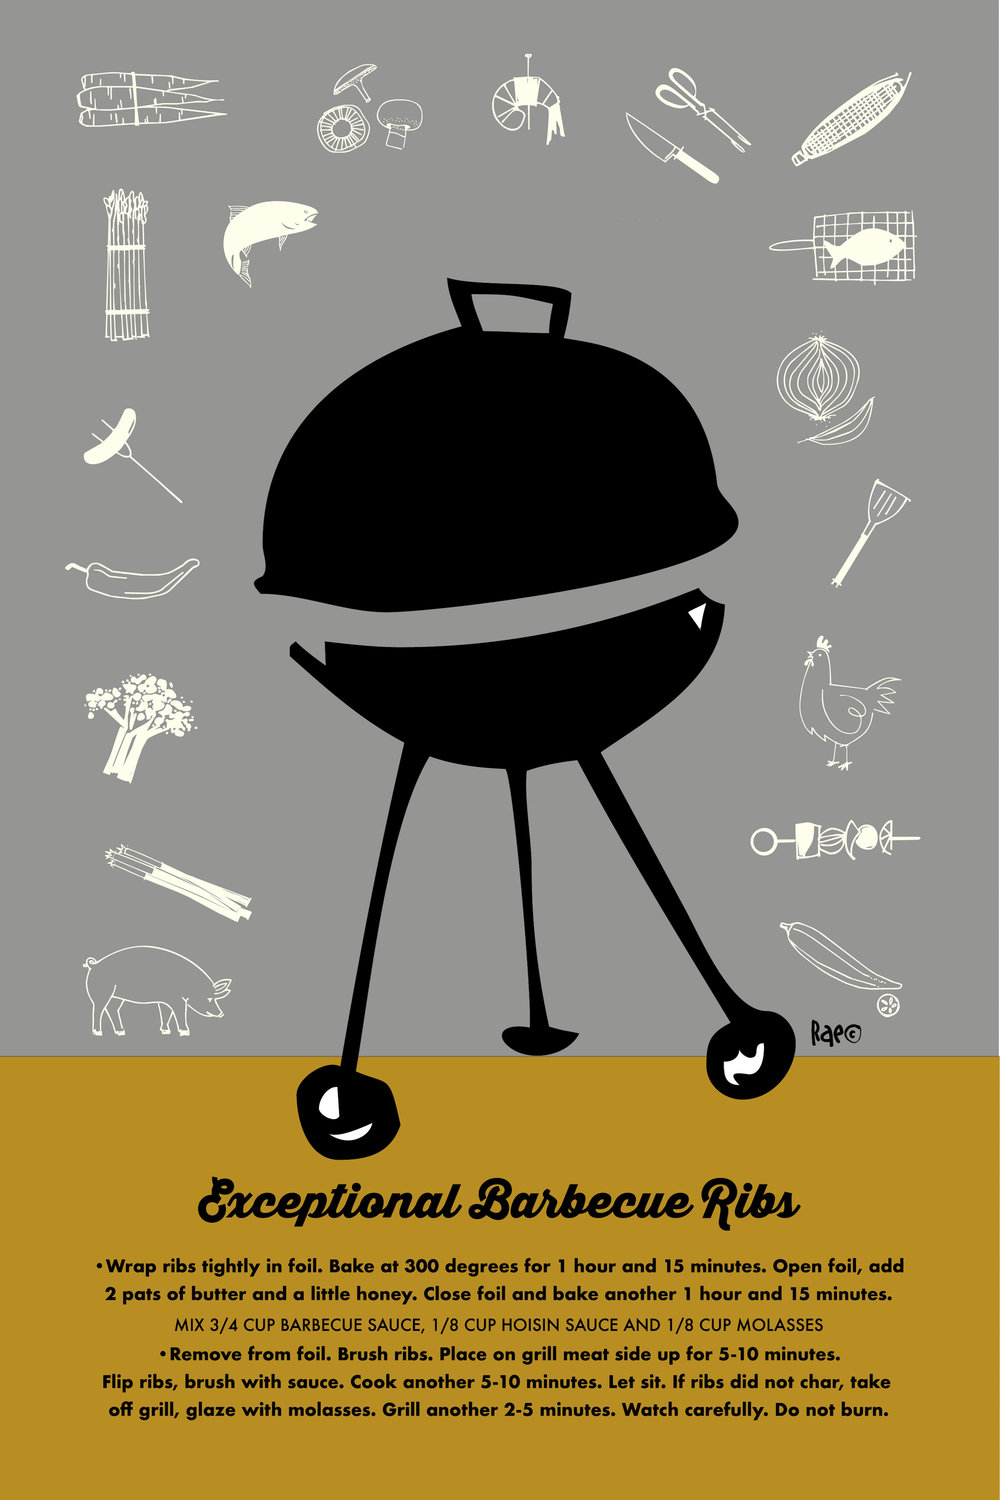 Barbeque Ribs dish towel by Rae Kaiser https://www.spoonflower.com/designs/7884844-exceptional-barbecue-ribs-dish-towel-by-outside_the_line